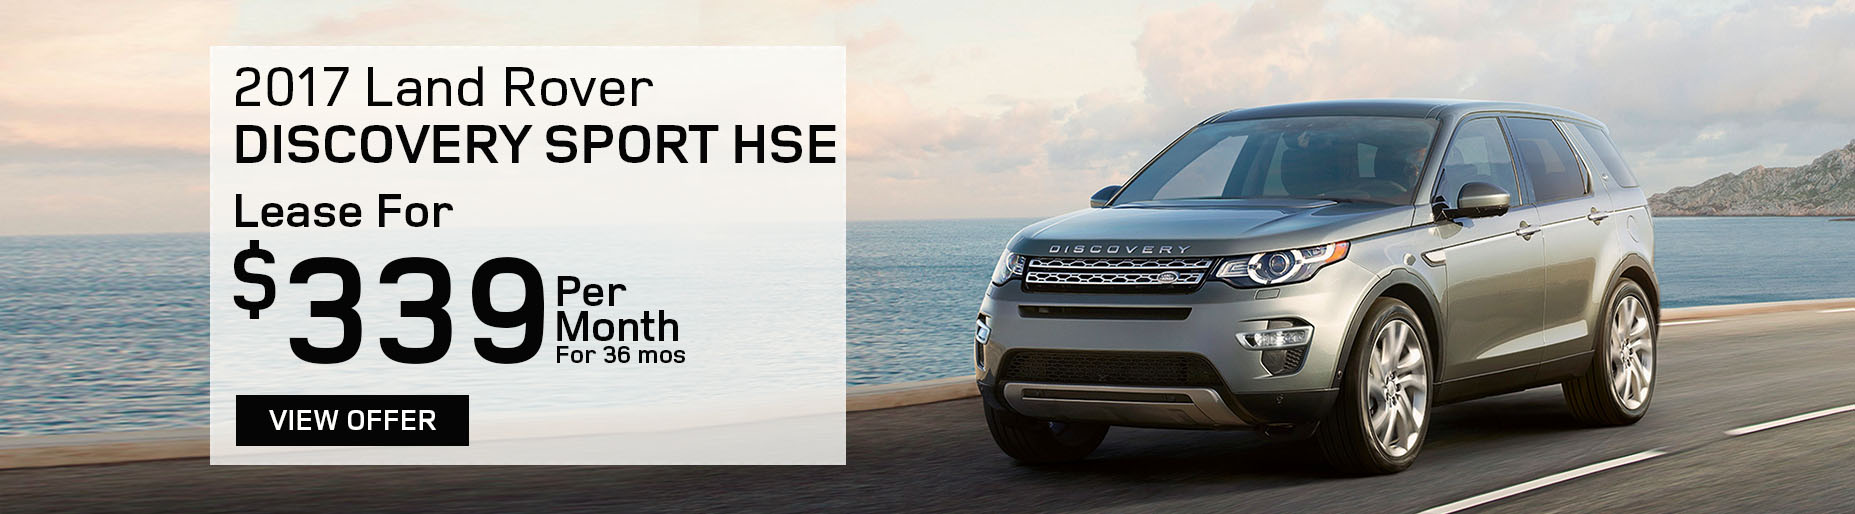 lr land se offer discovery shared specials landrover rover new special lease